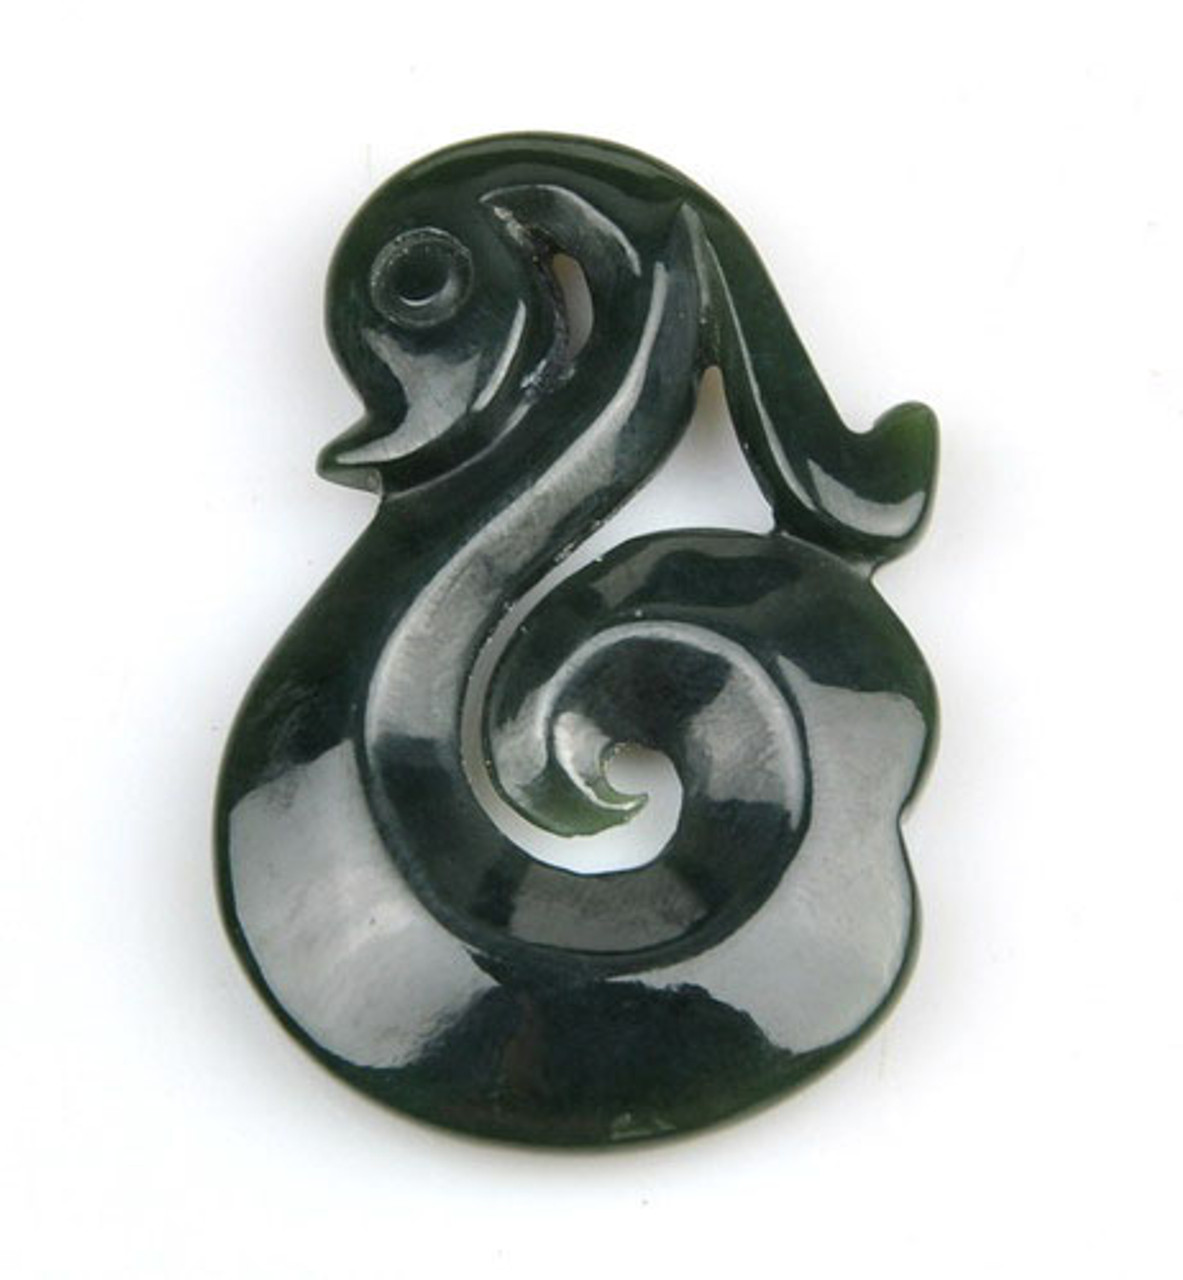 Nephrite Jade Koru Pendant Greenstone Pounamu Necklace New Zealand Maori Art -G012423